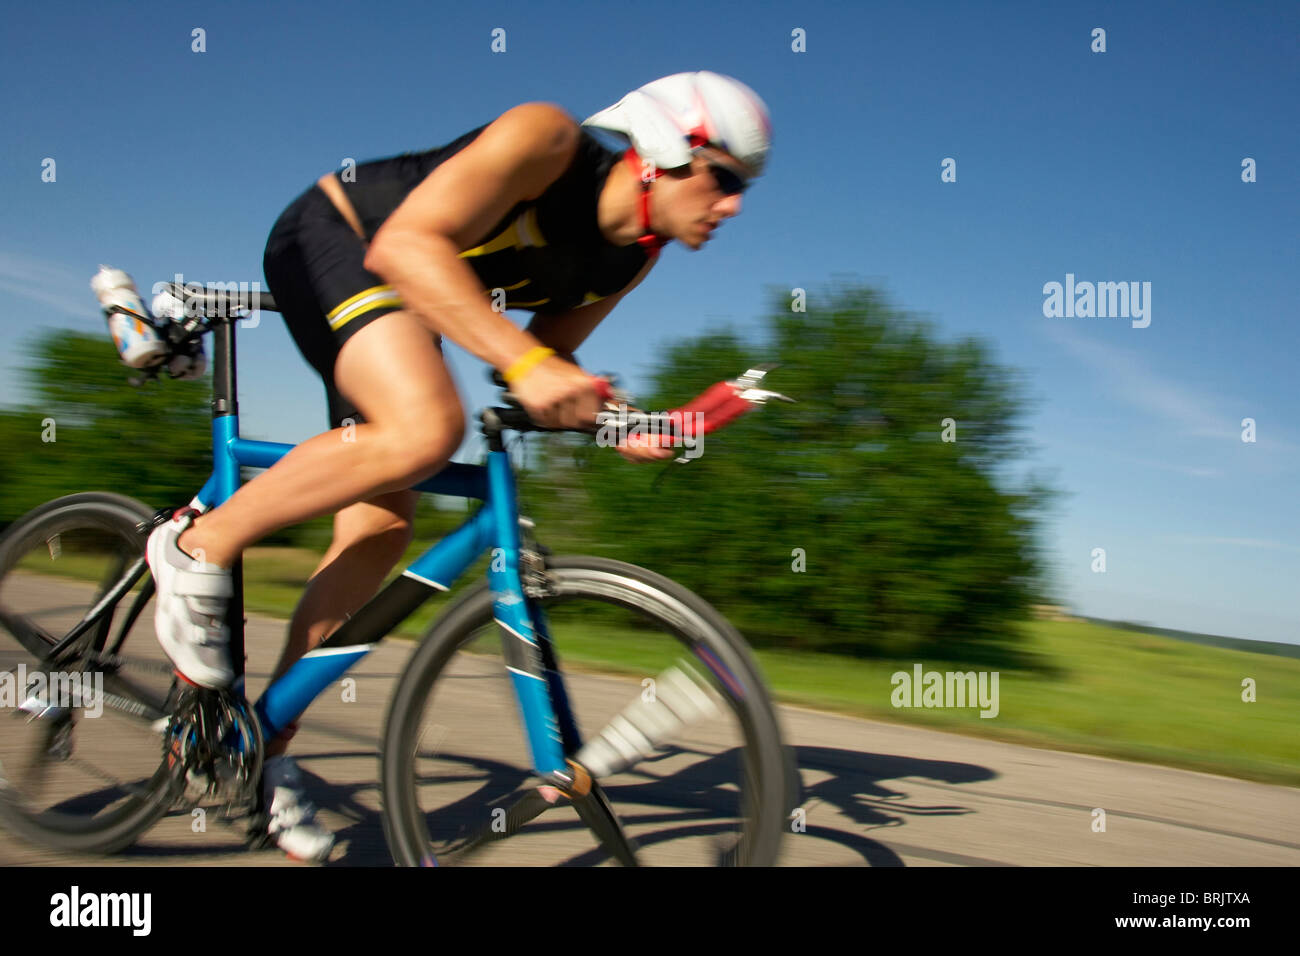 A male athelete training for a triathlon at a lake on a bike. - Stock Image